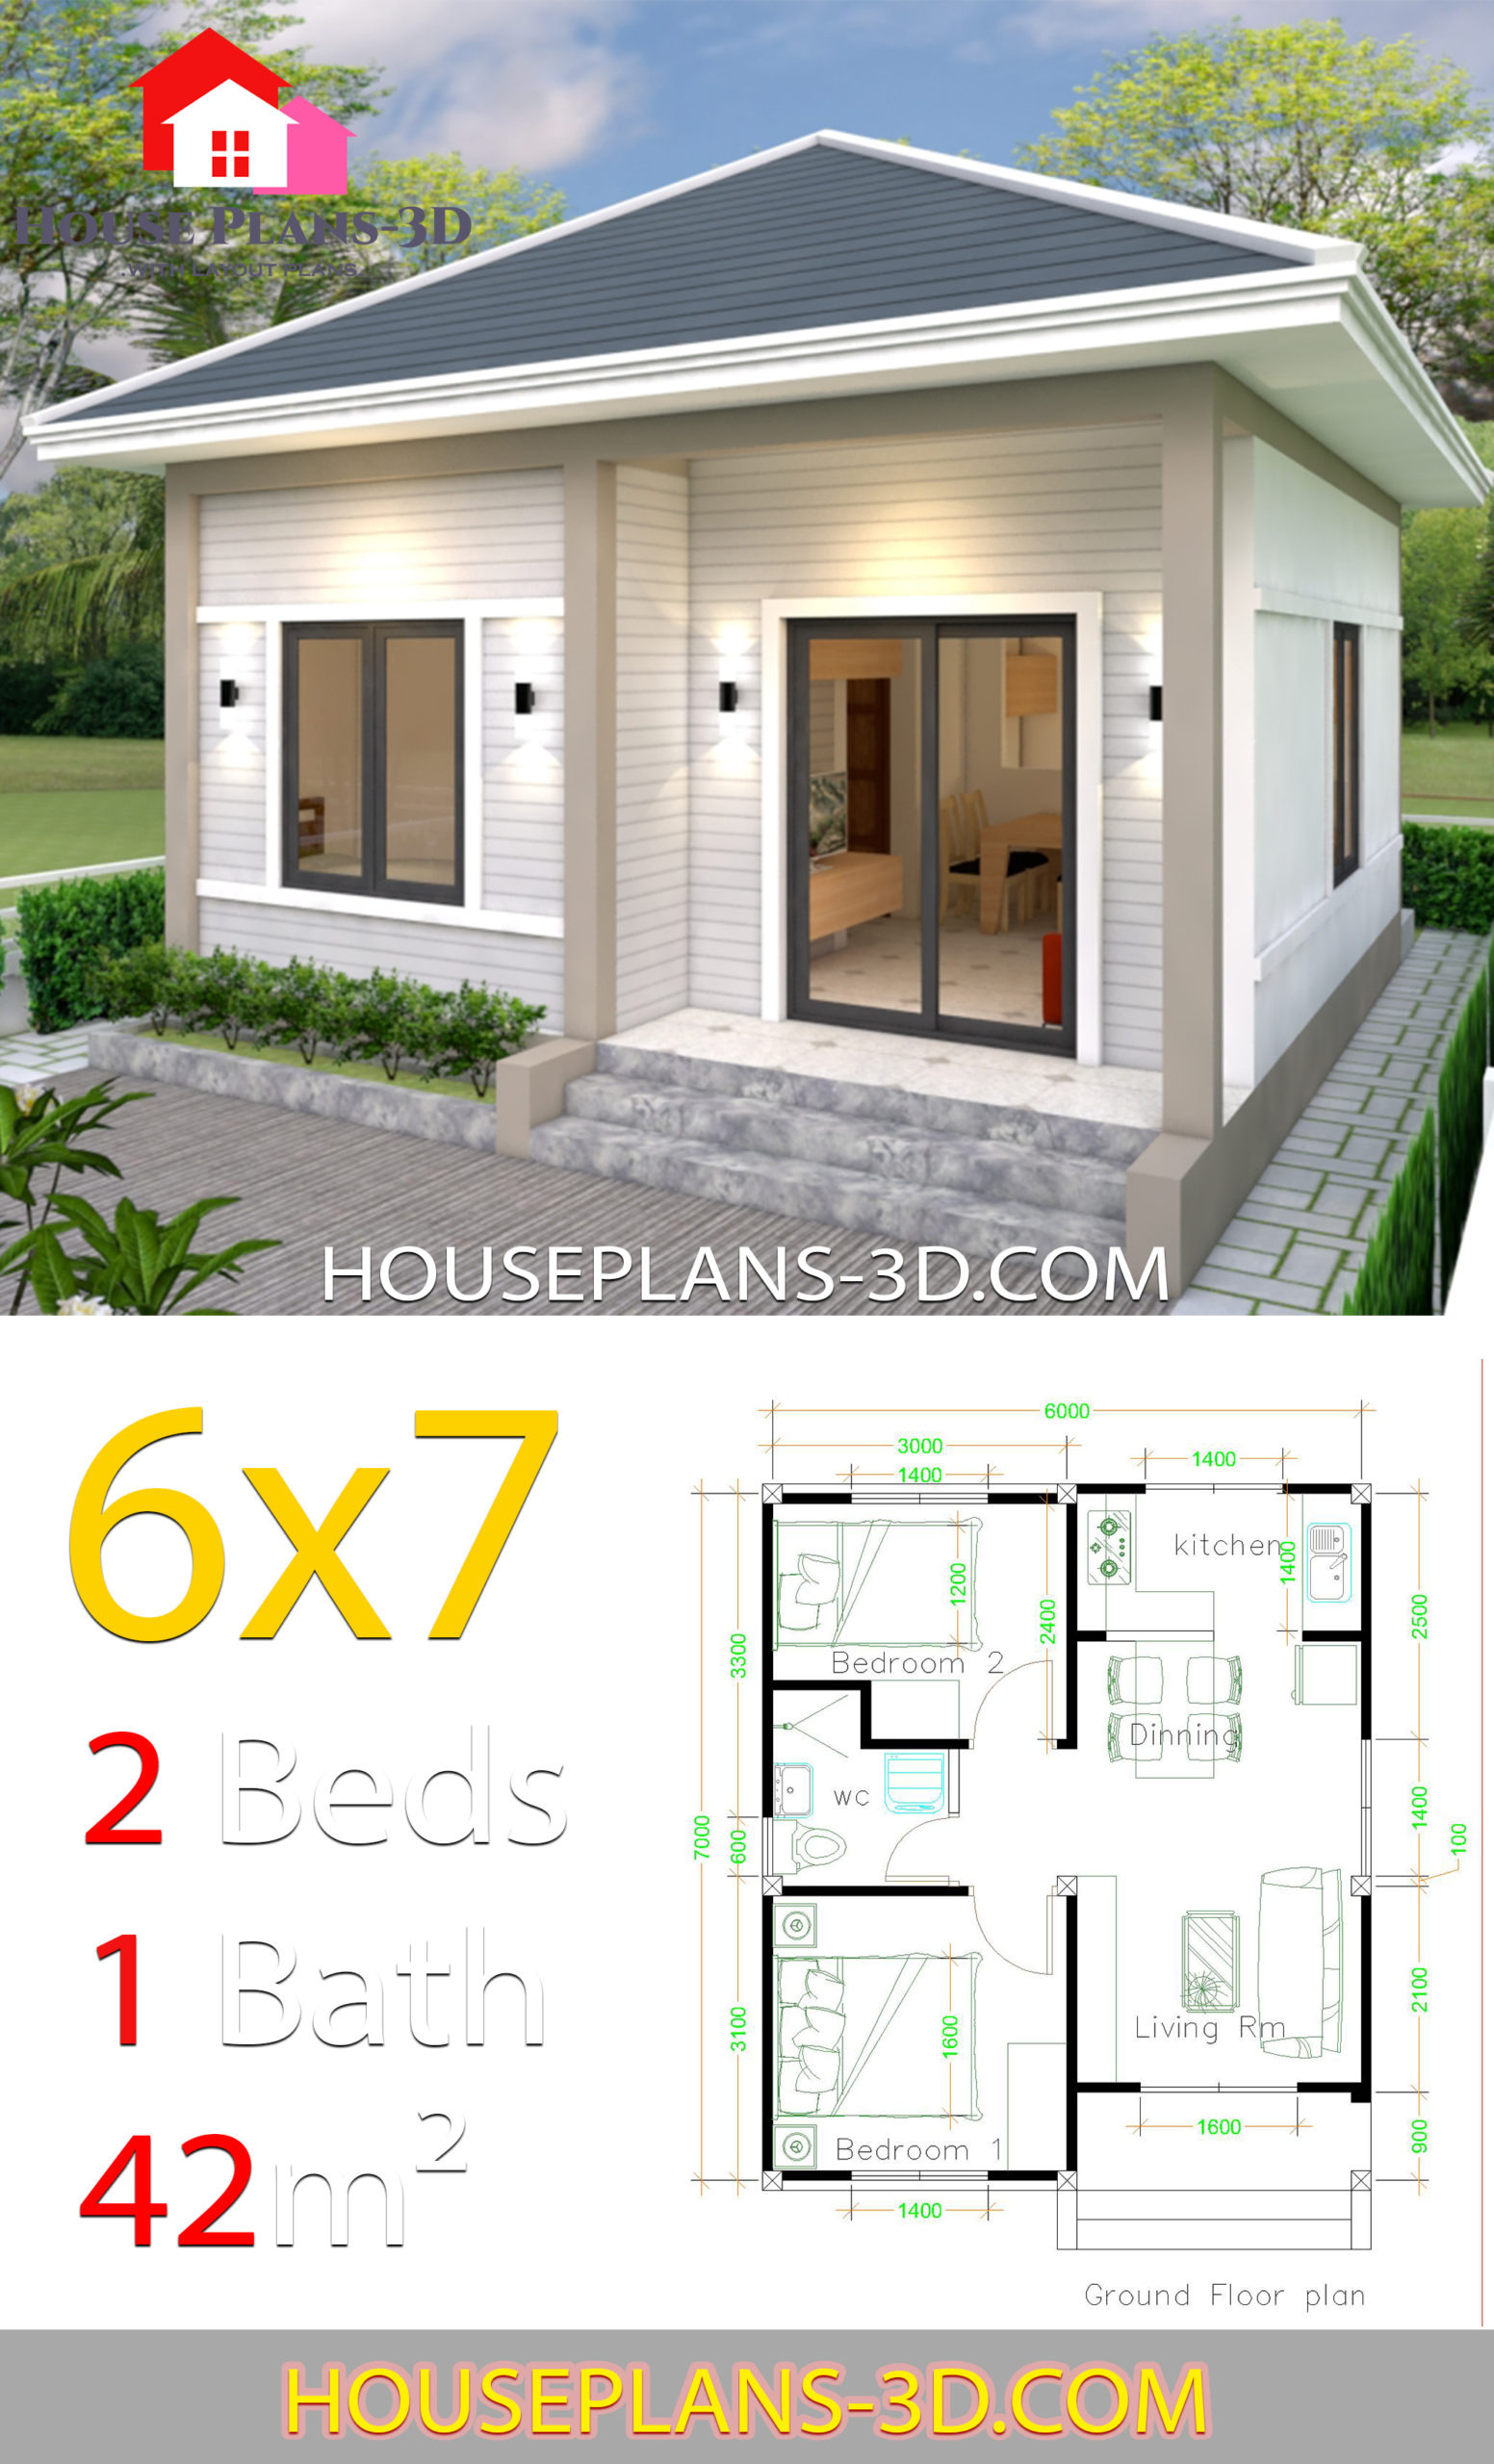 Simple House Plans 6x7 with 2 bedrooms Hip Roof V10 scaled